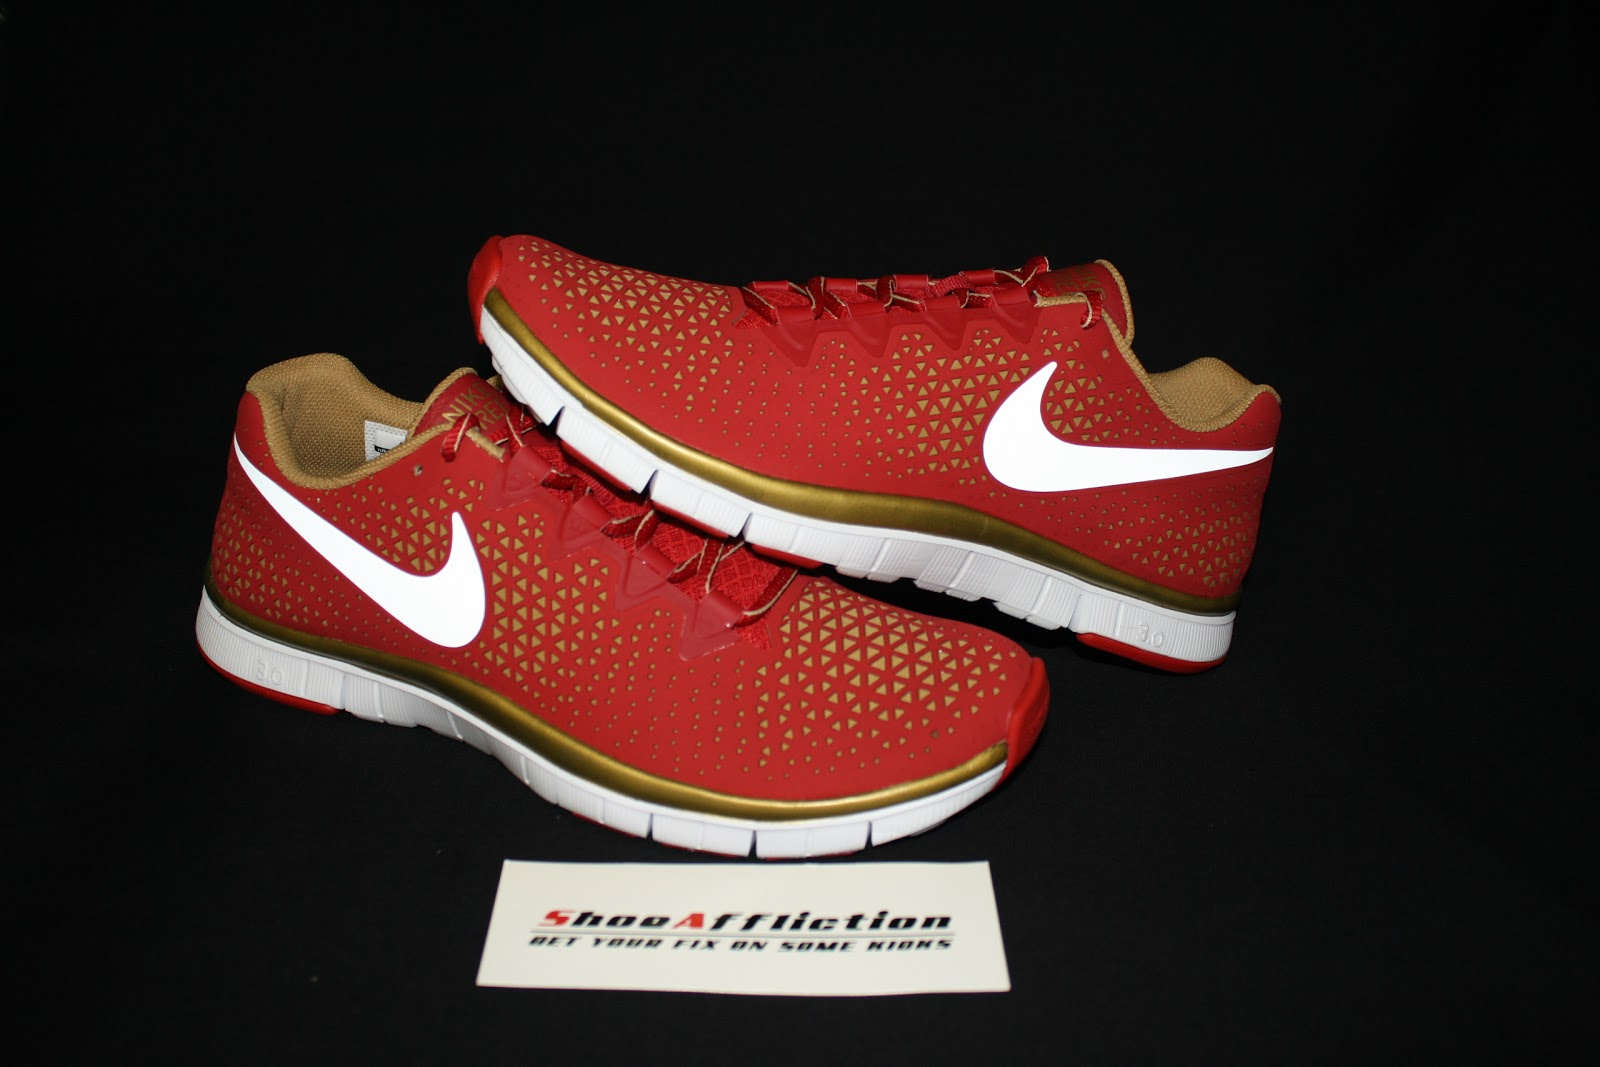 NIKE FREE HAVEN 3.0 X NFL DRAFT DAY SAN FRANCISCO 49ERS